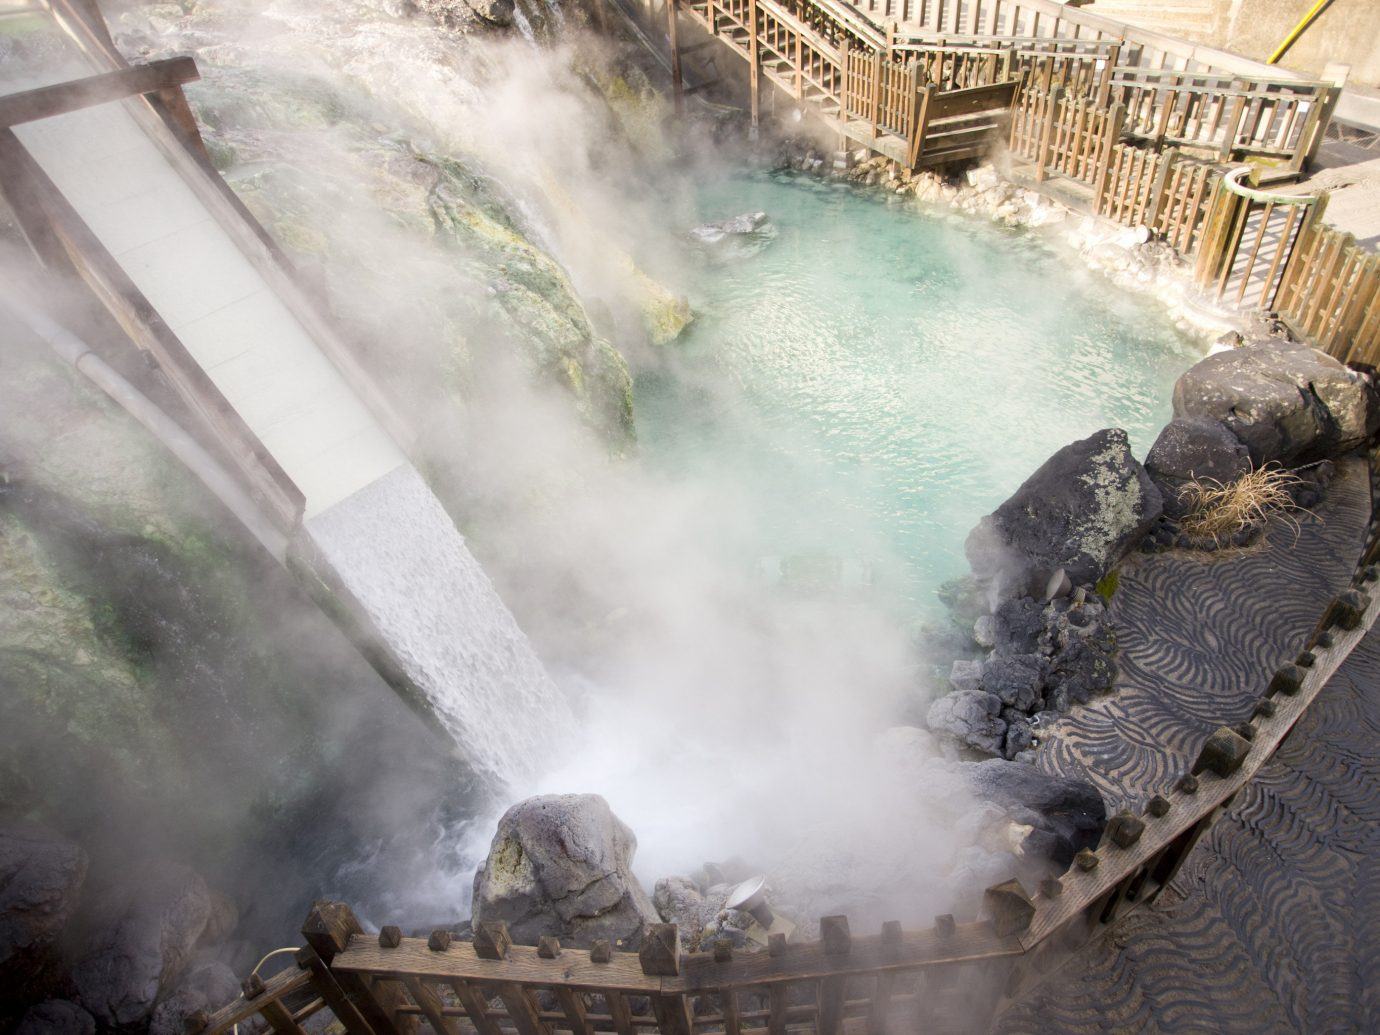 Day Trips water body of water fire smoke water resources outdoor water feature watercourse hot spring steam stack